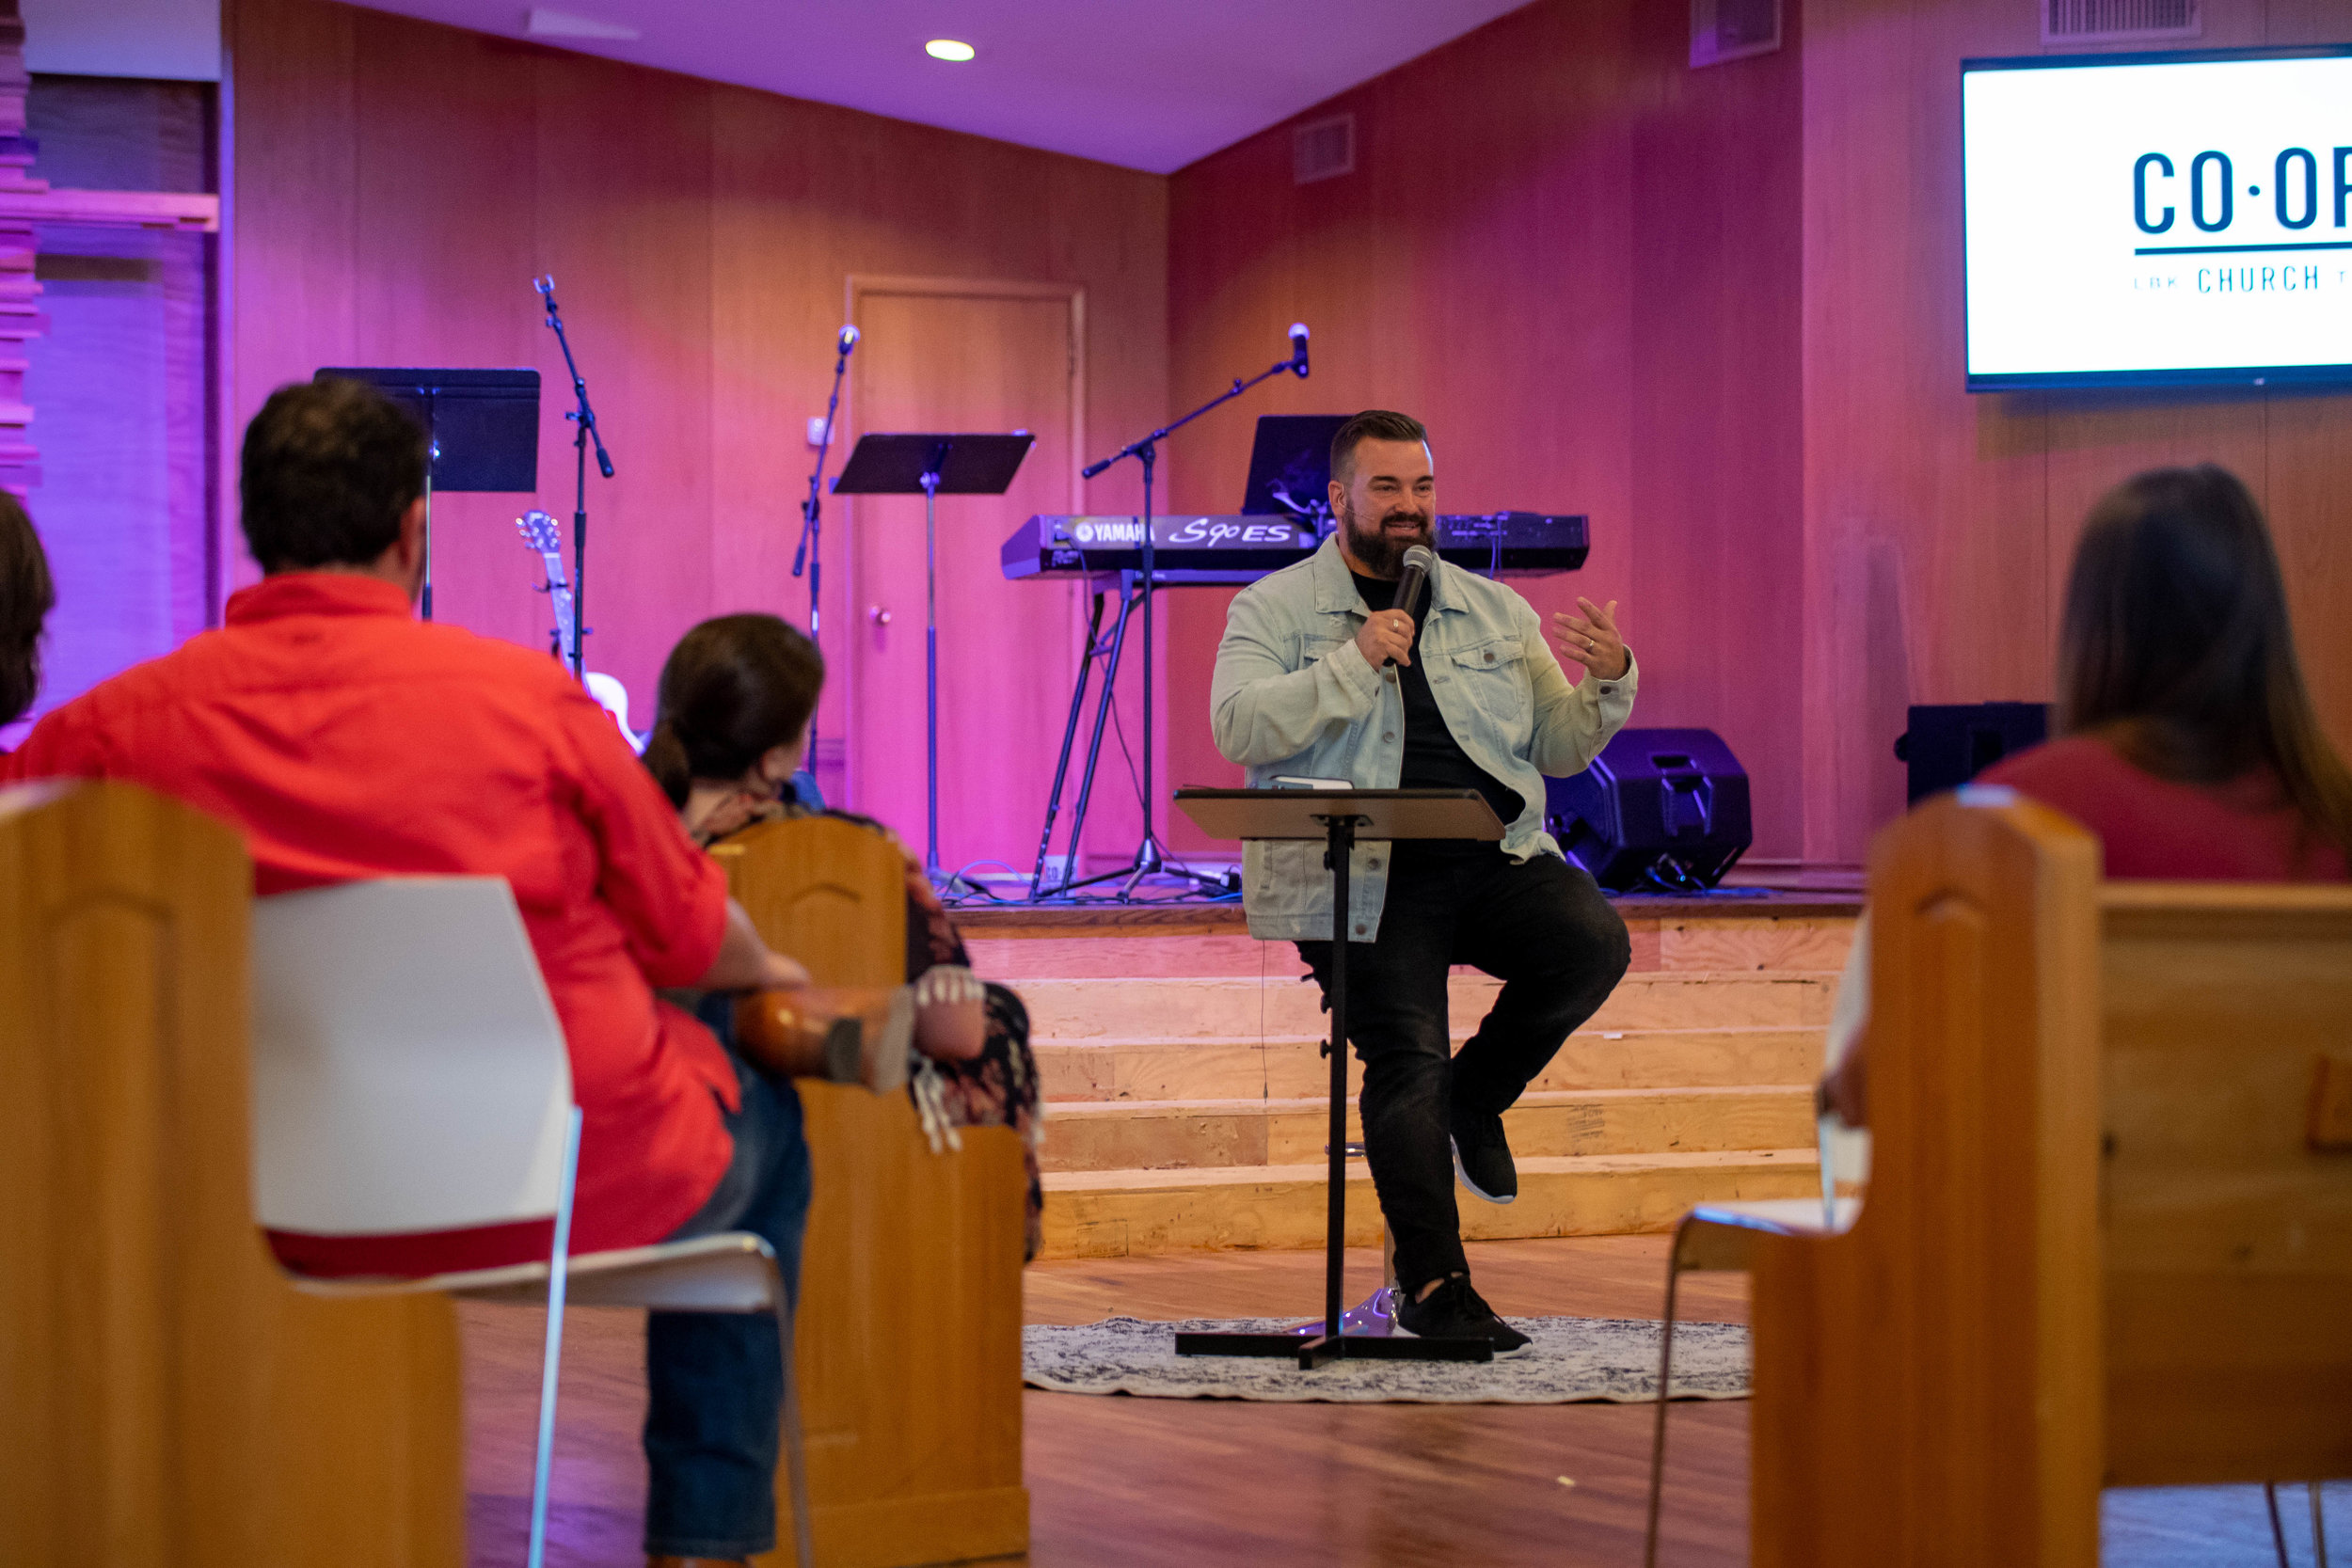 Justin Stice preaching on CO-OP Church's first Sunday.